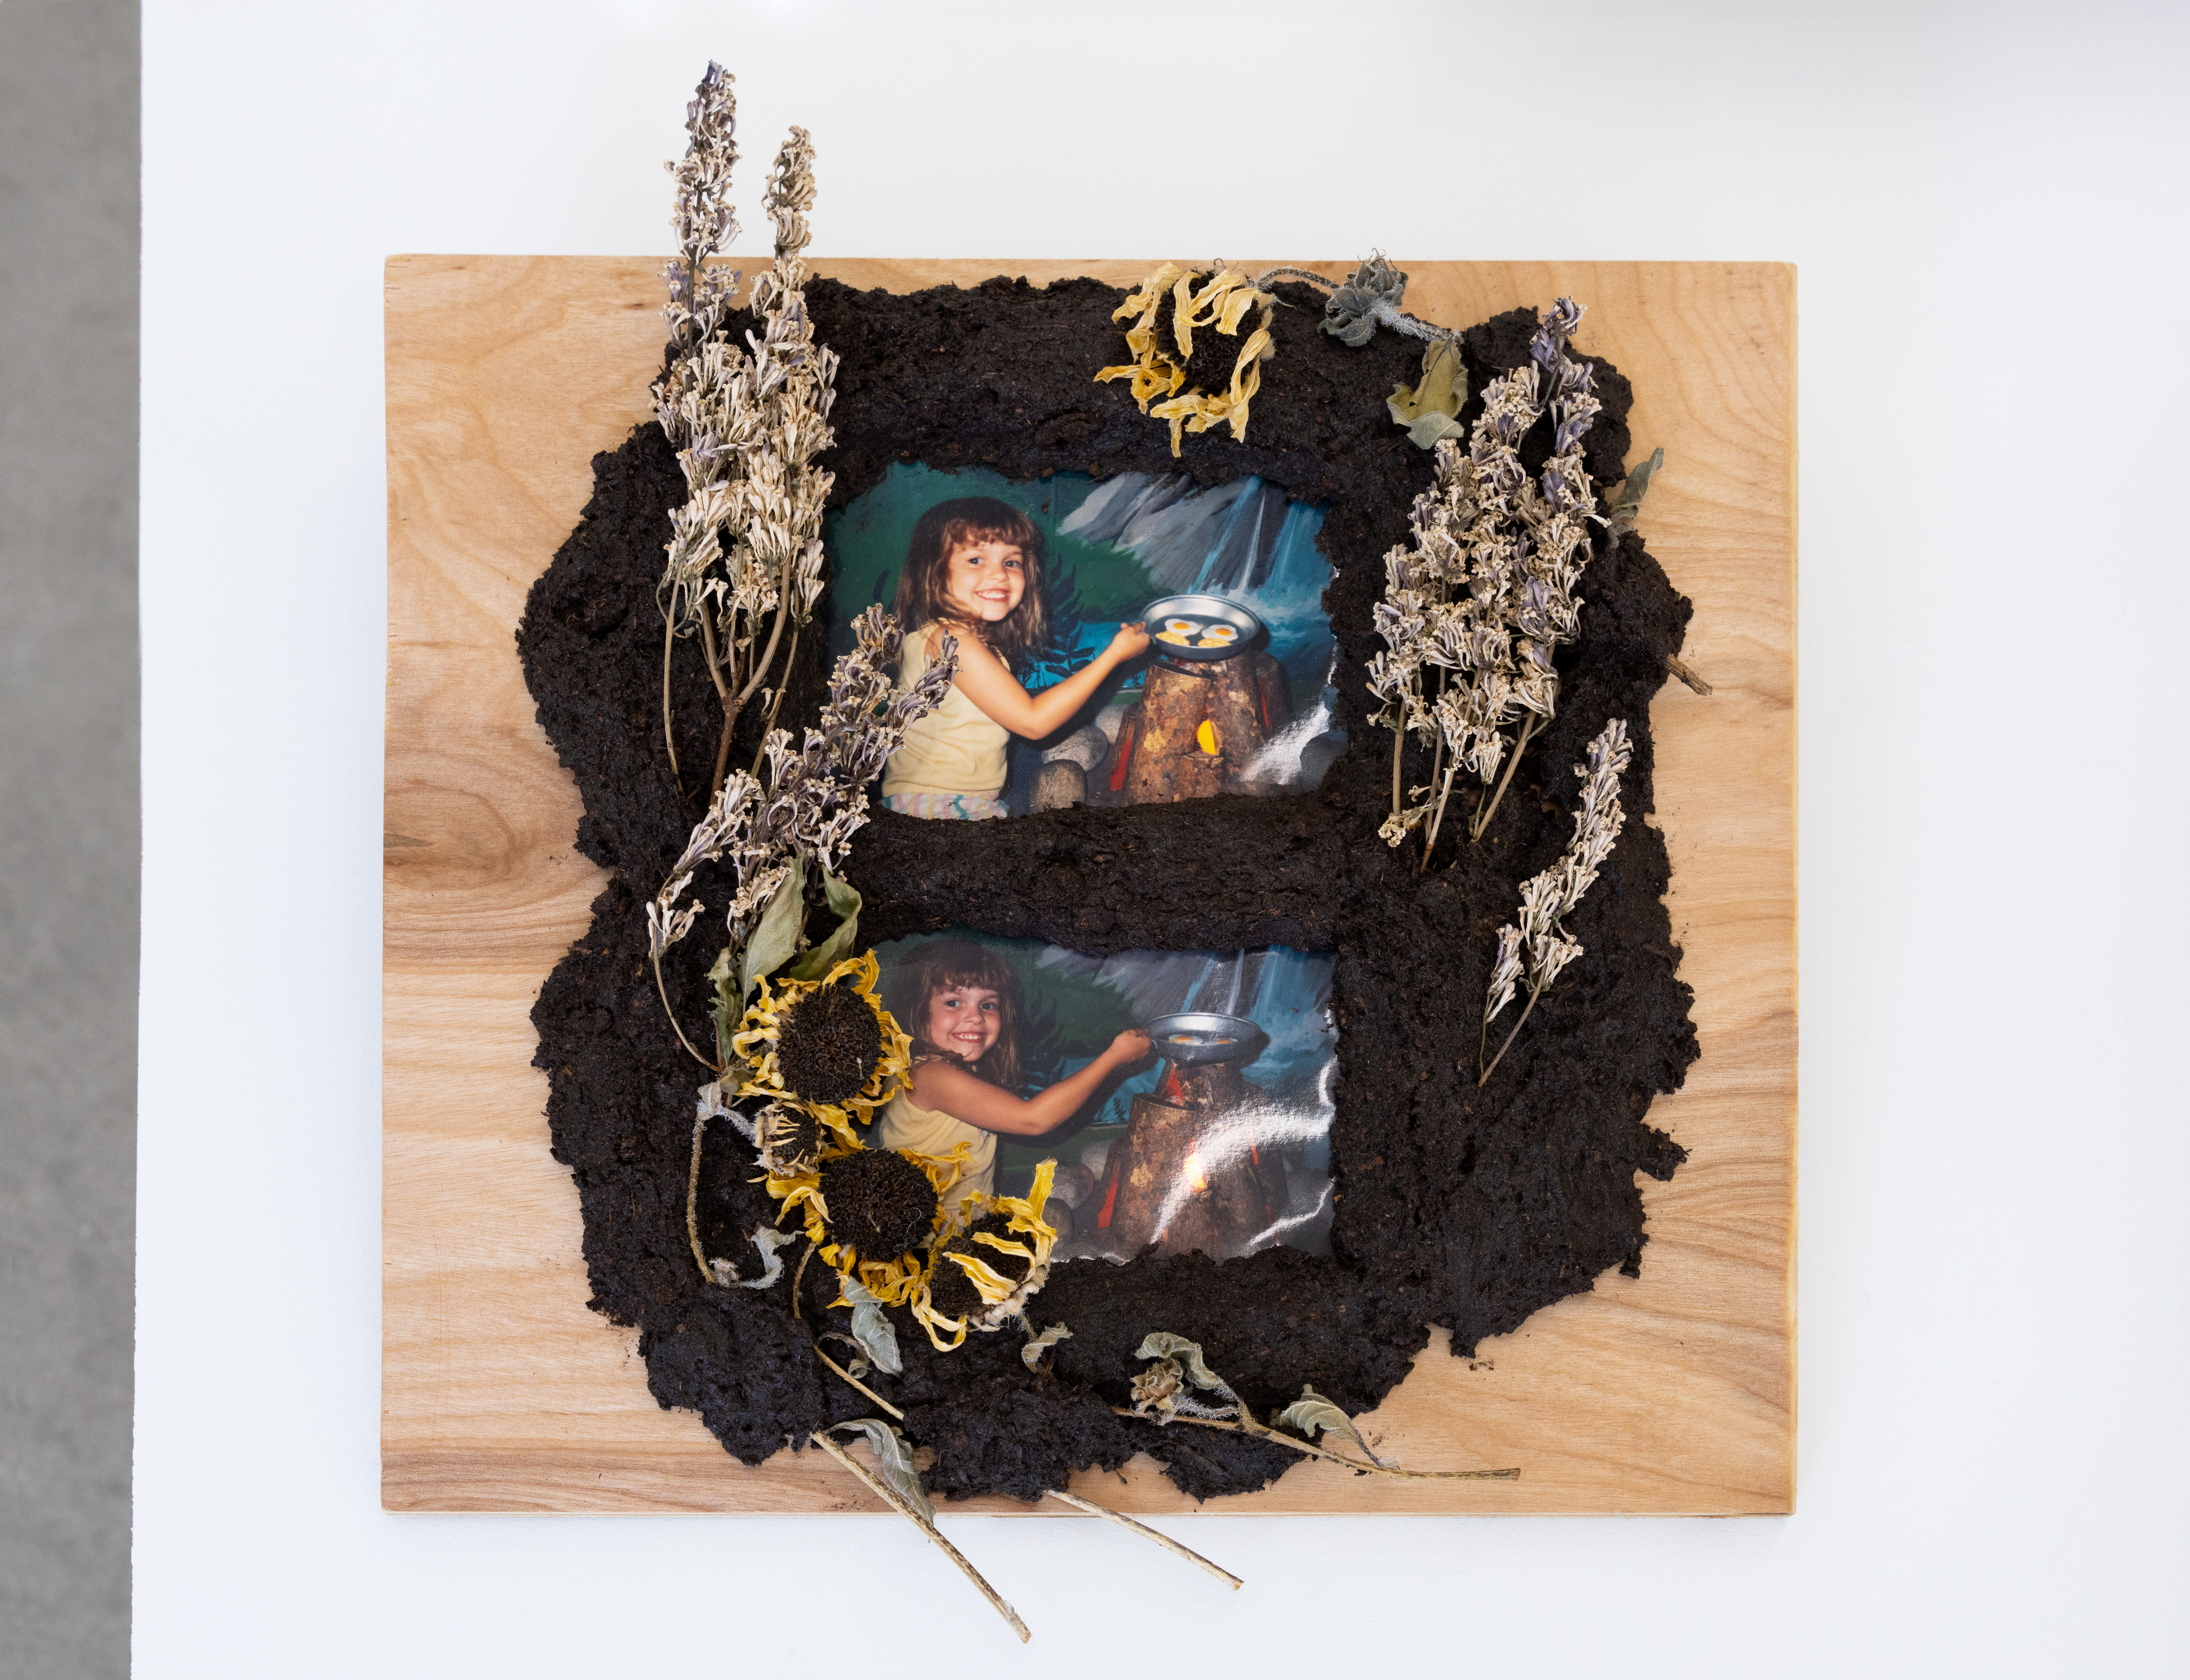 """Image: Lilacs, 2020 by Cass Davis. Cast soil, wooden panel, photographs, resined lilacs, and sunflowers, 13 x 12"""". Two photographs of a young girl sits under soil, lilacs, and sunflowers on wood. Image courtesy of the artist. Photo by Nick Albertson."""